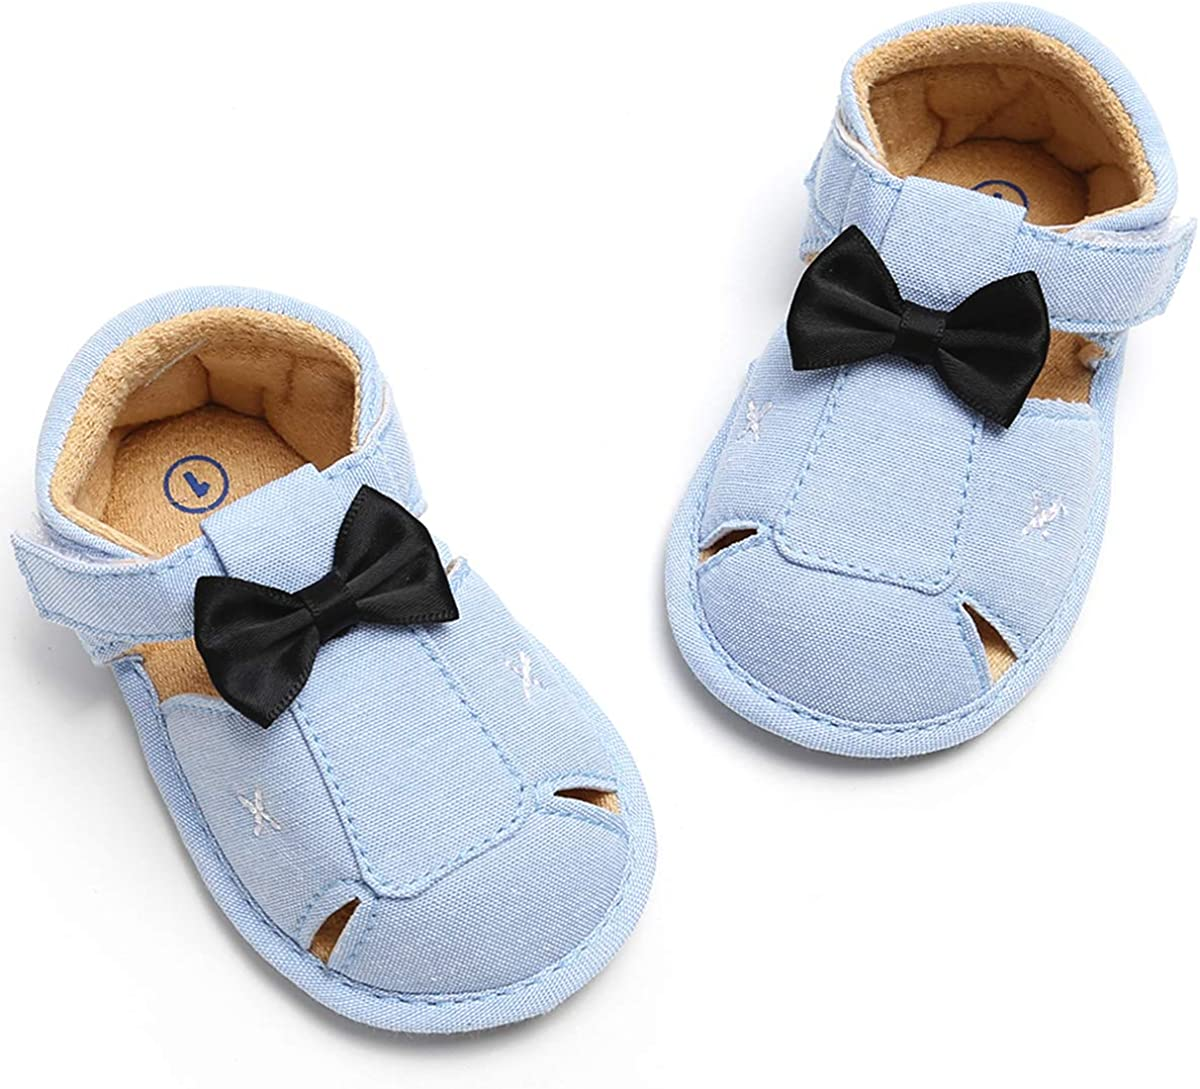 BubbleColor Baby Girls Boys Summer Sandals Closed-Toe Infant Toddler Prewalker Bow Tie Little Gentleman Anti-Slip Walking Crib Shoes Moccasins